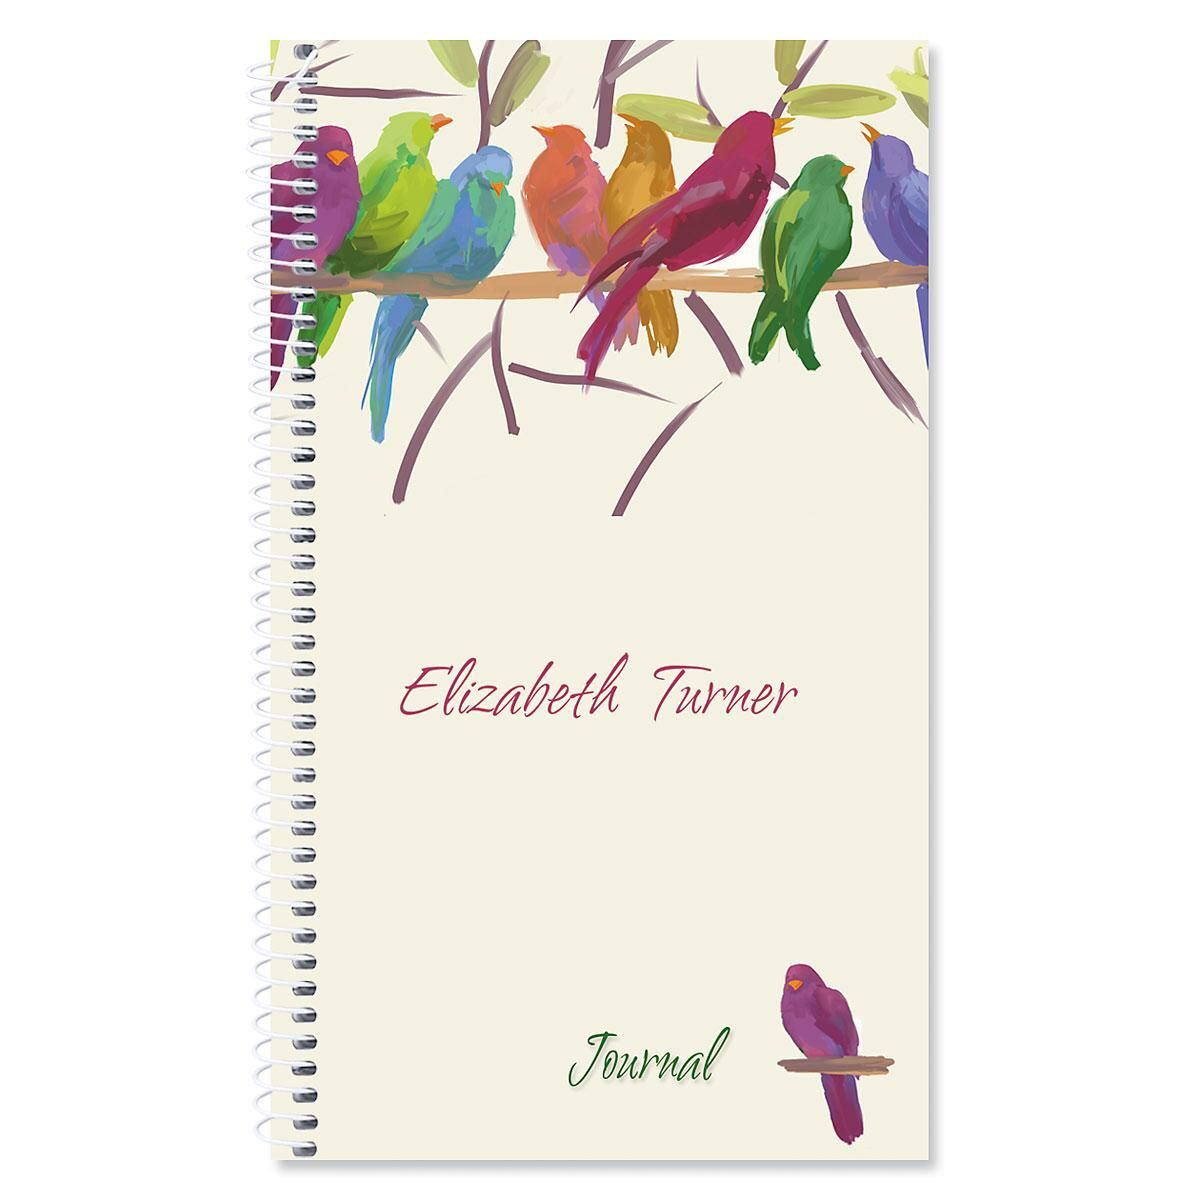 Flocked Together Personalized Daily Journal